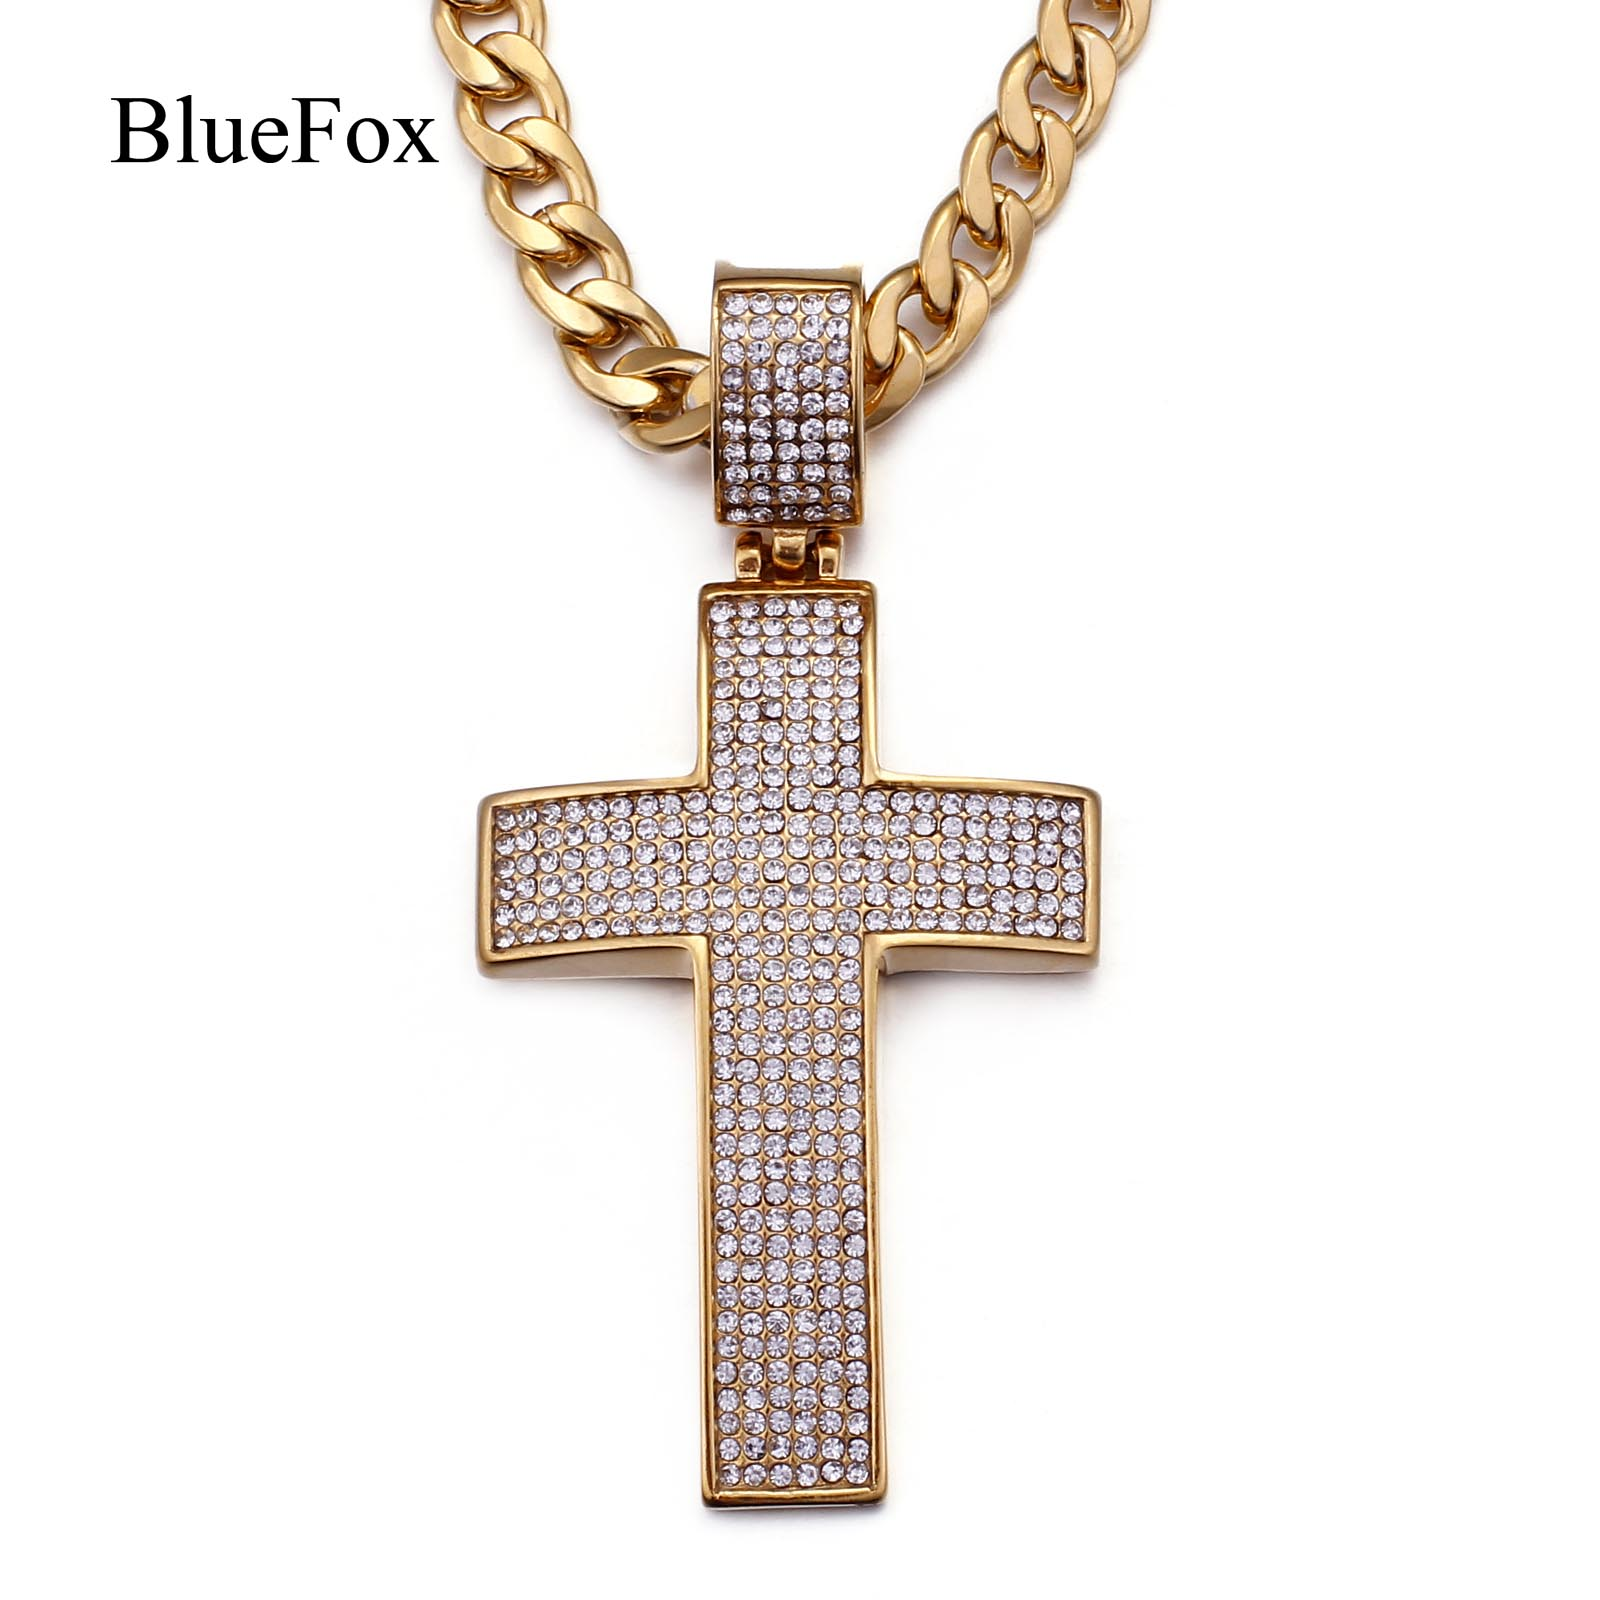 Chic Zircon Cross Pendants Necklace Women Men 316L Stainless Steel Link Chain Necklace Fashion Charms Jewelry Accessories Gift купить в Москве 2019